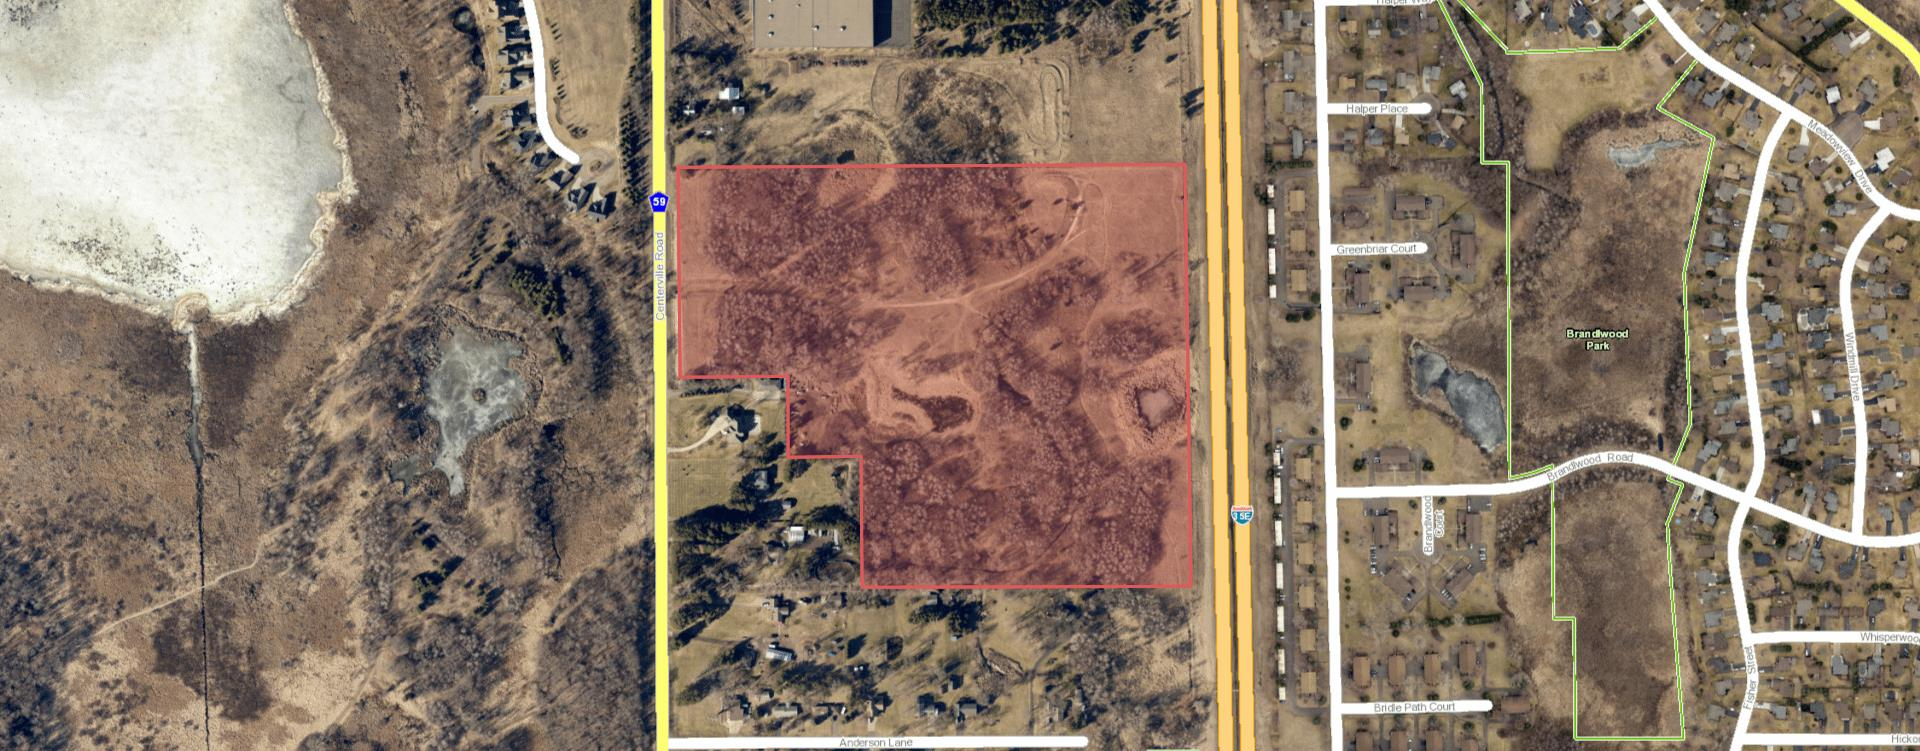 Main Photo For White Bear Township Data Center Site (White Bear Township, MN)